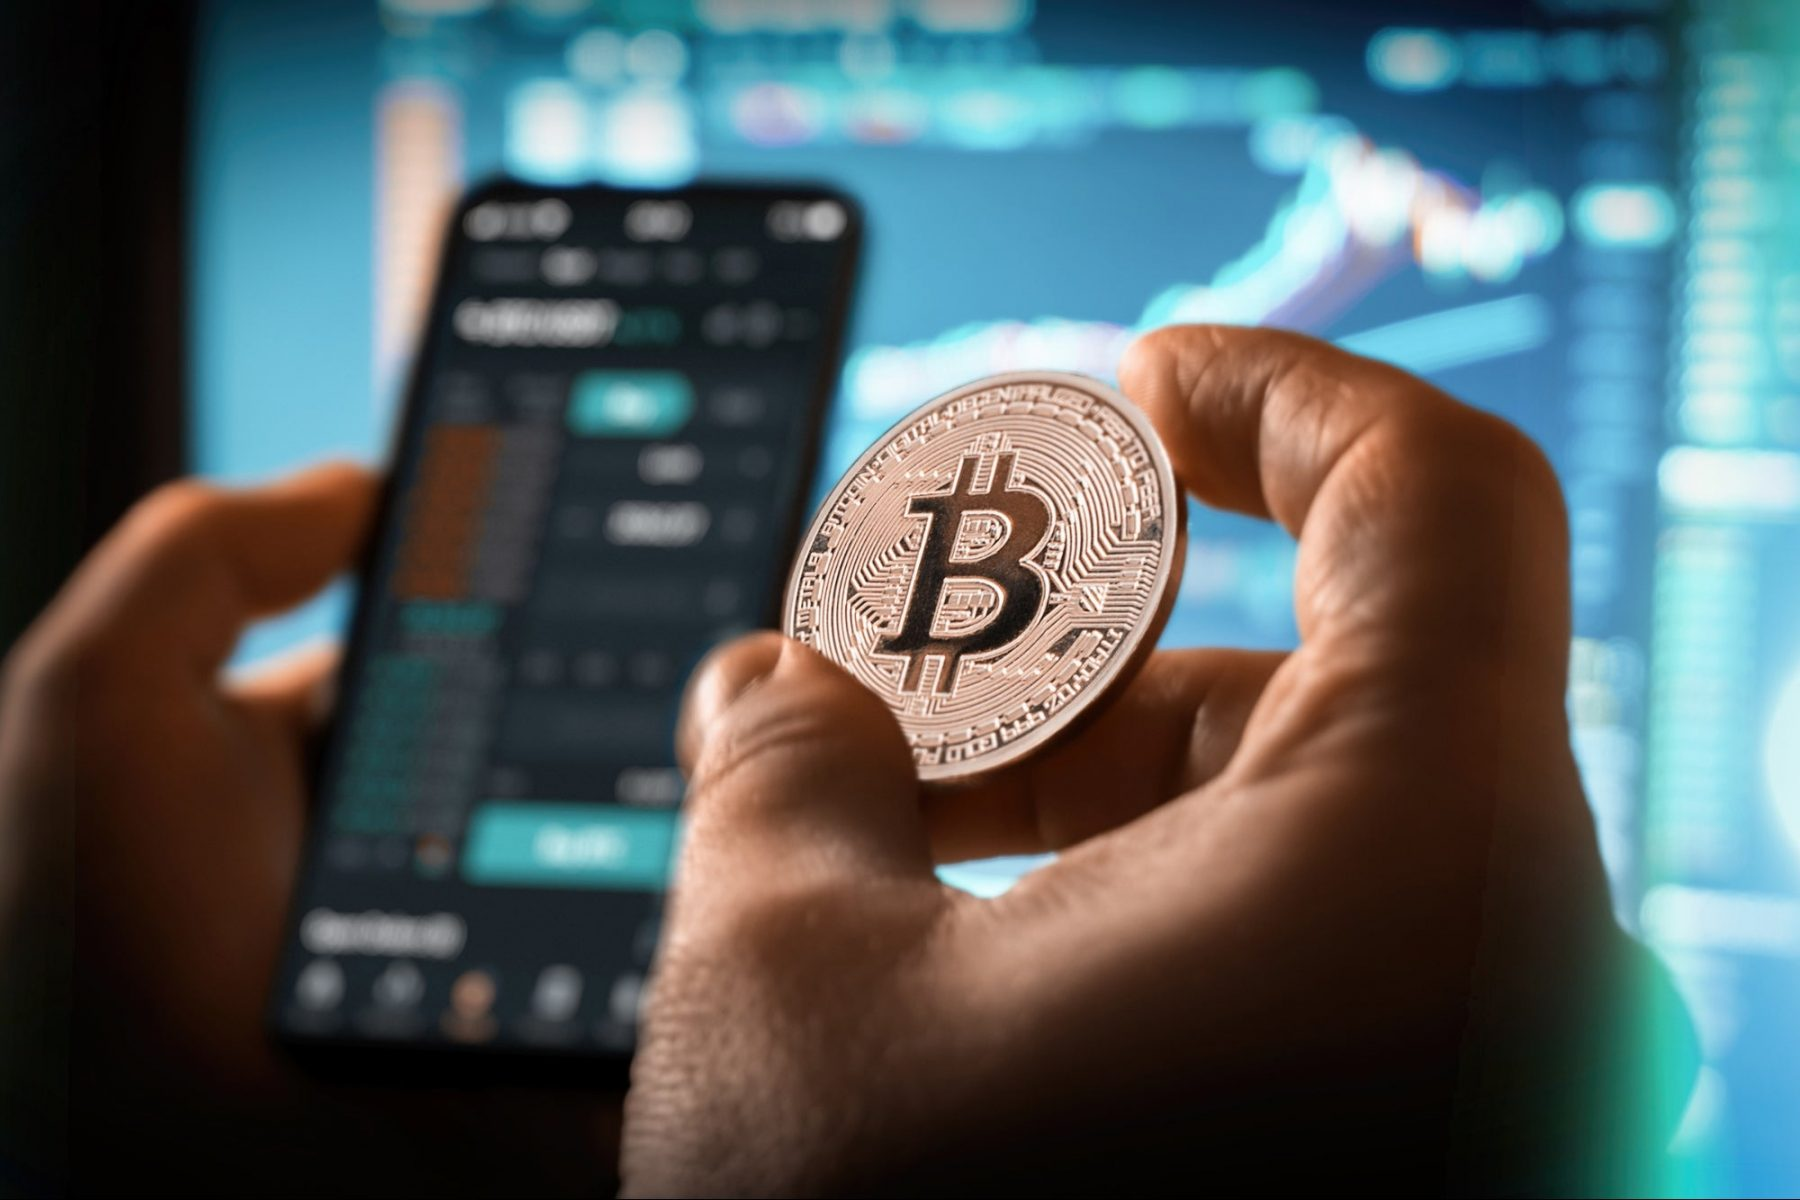 bitcoin-surges-above-$50,000-for-first-time-since-spring